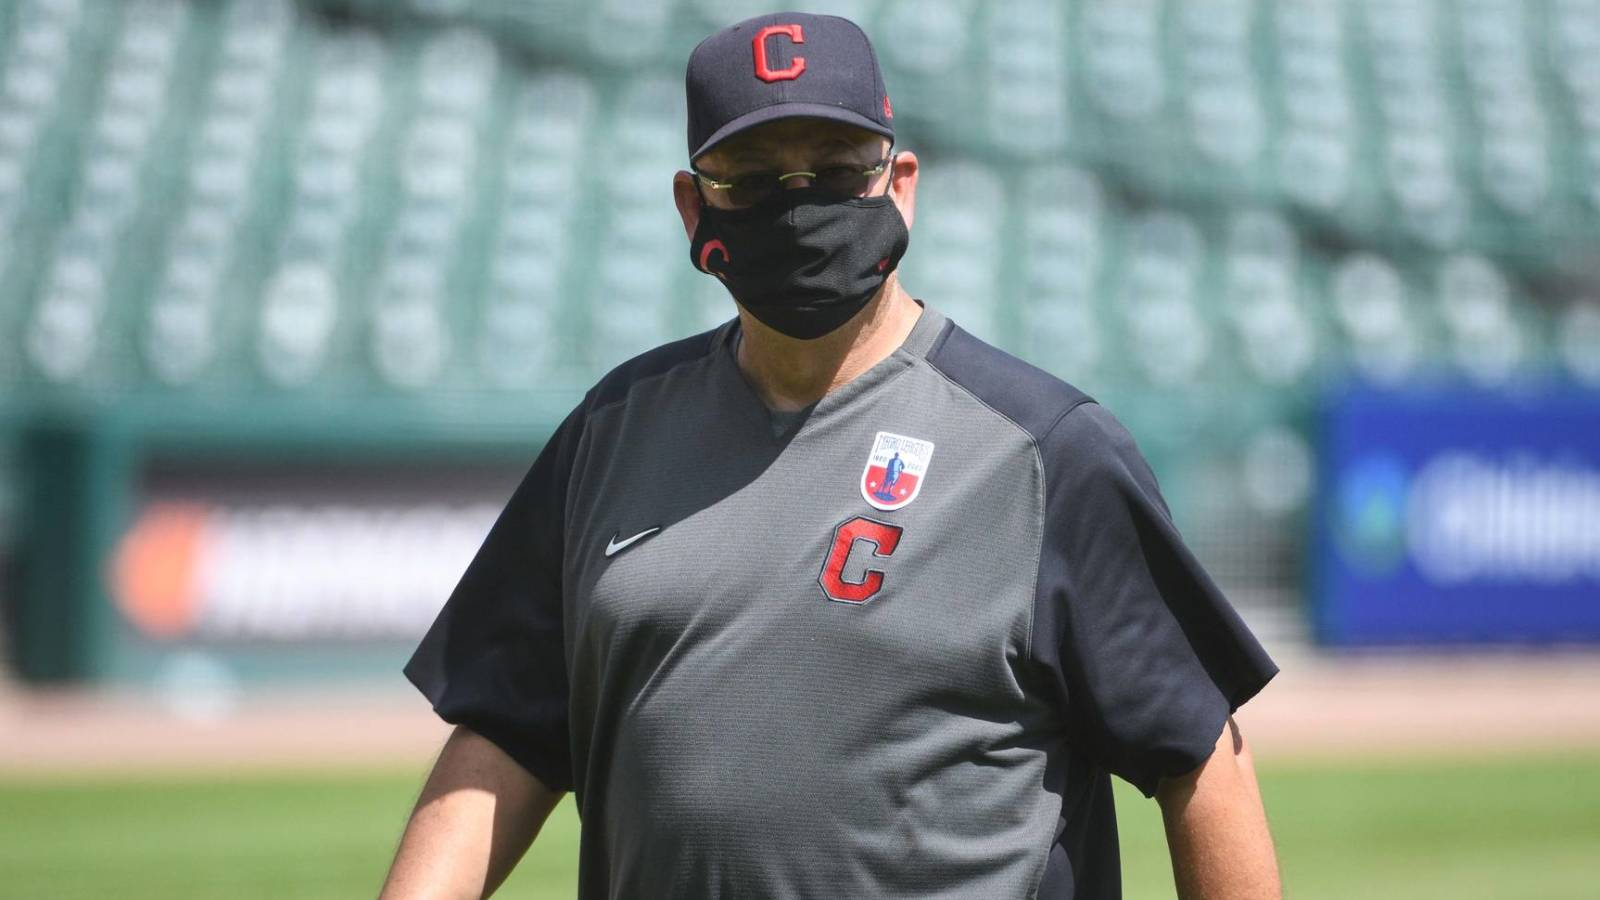 Terry Francona: 'No one has deliberately covered up' allegations against Mickey Callaway